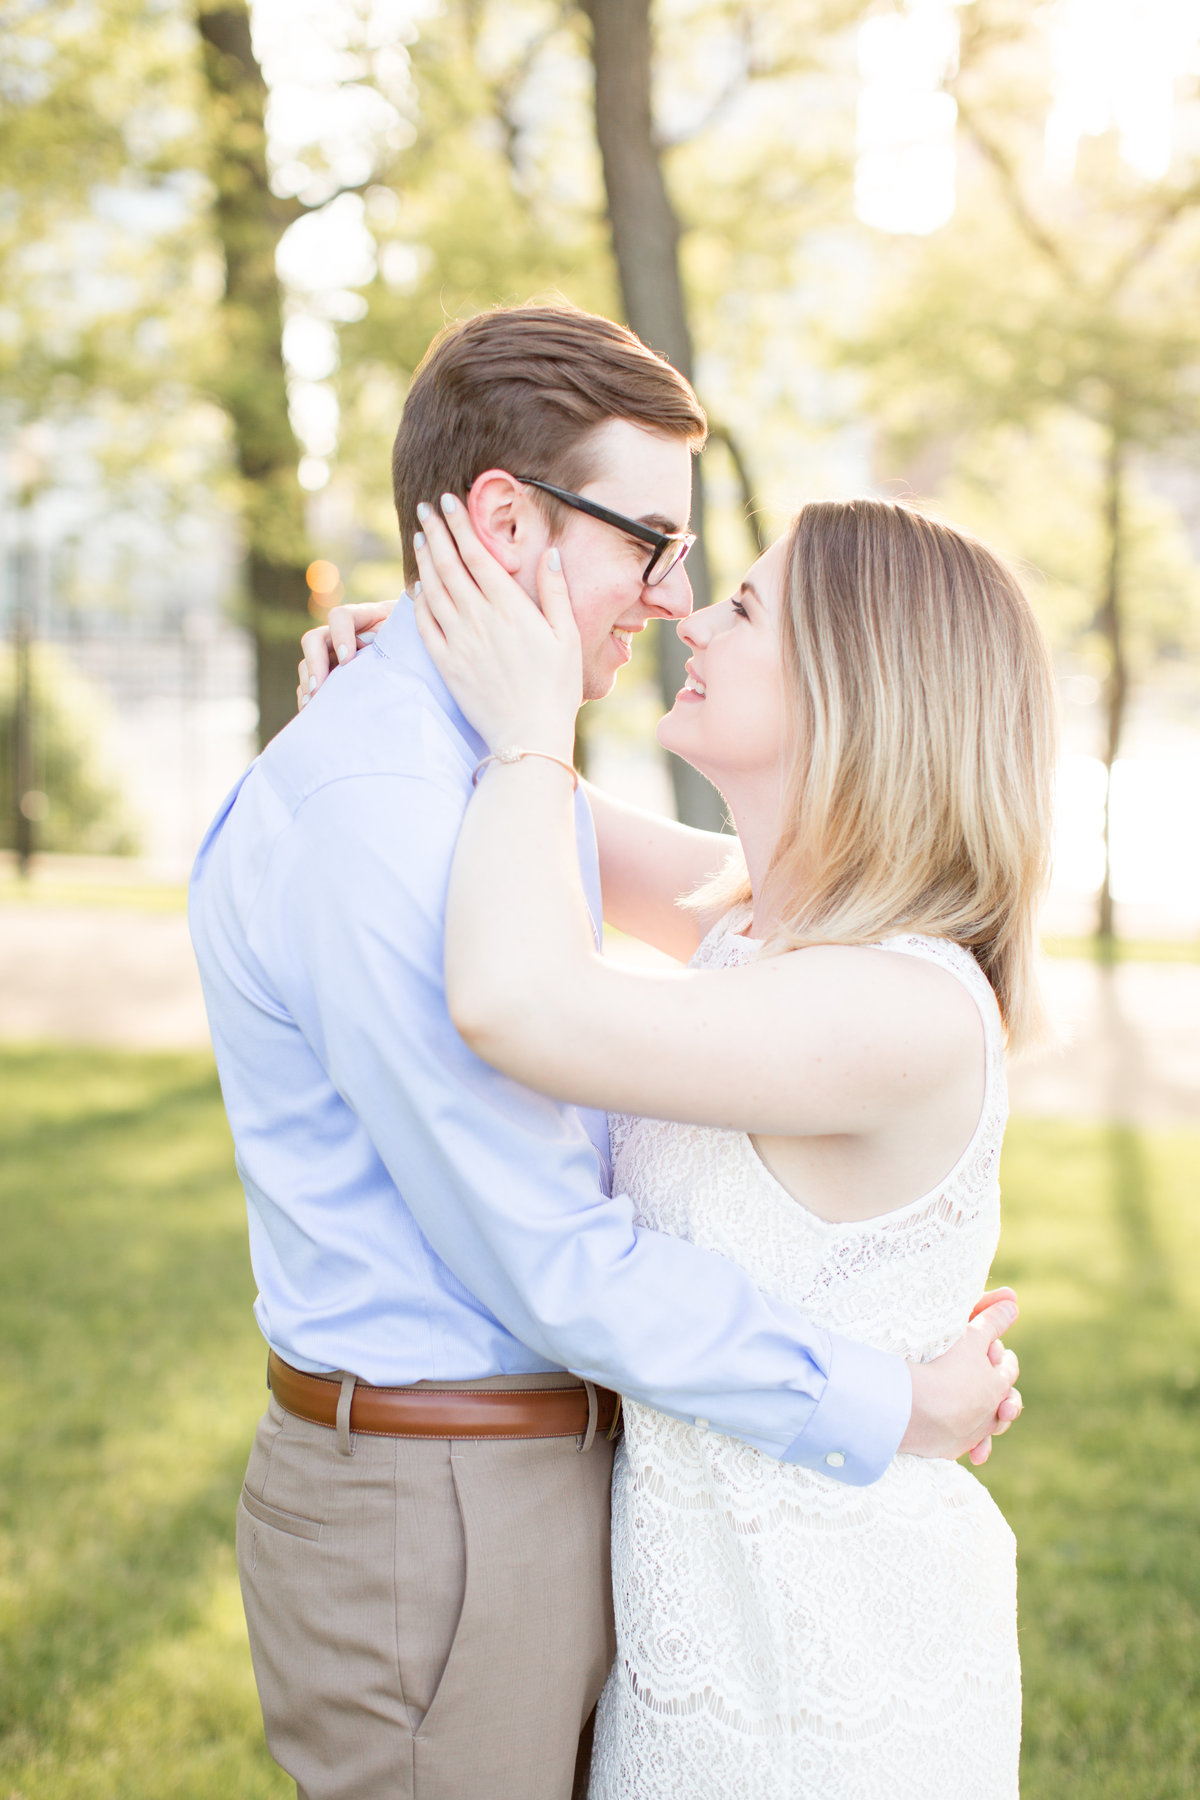 olive-park-engagement-pictures-couple-sunset-golden-hour-blogger-chicago-city-illinois-photographer-photo